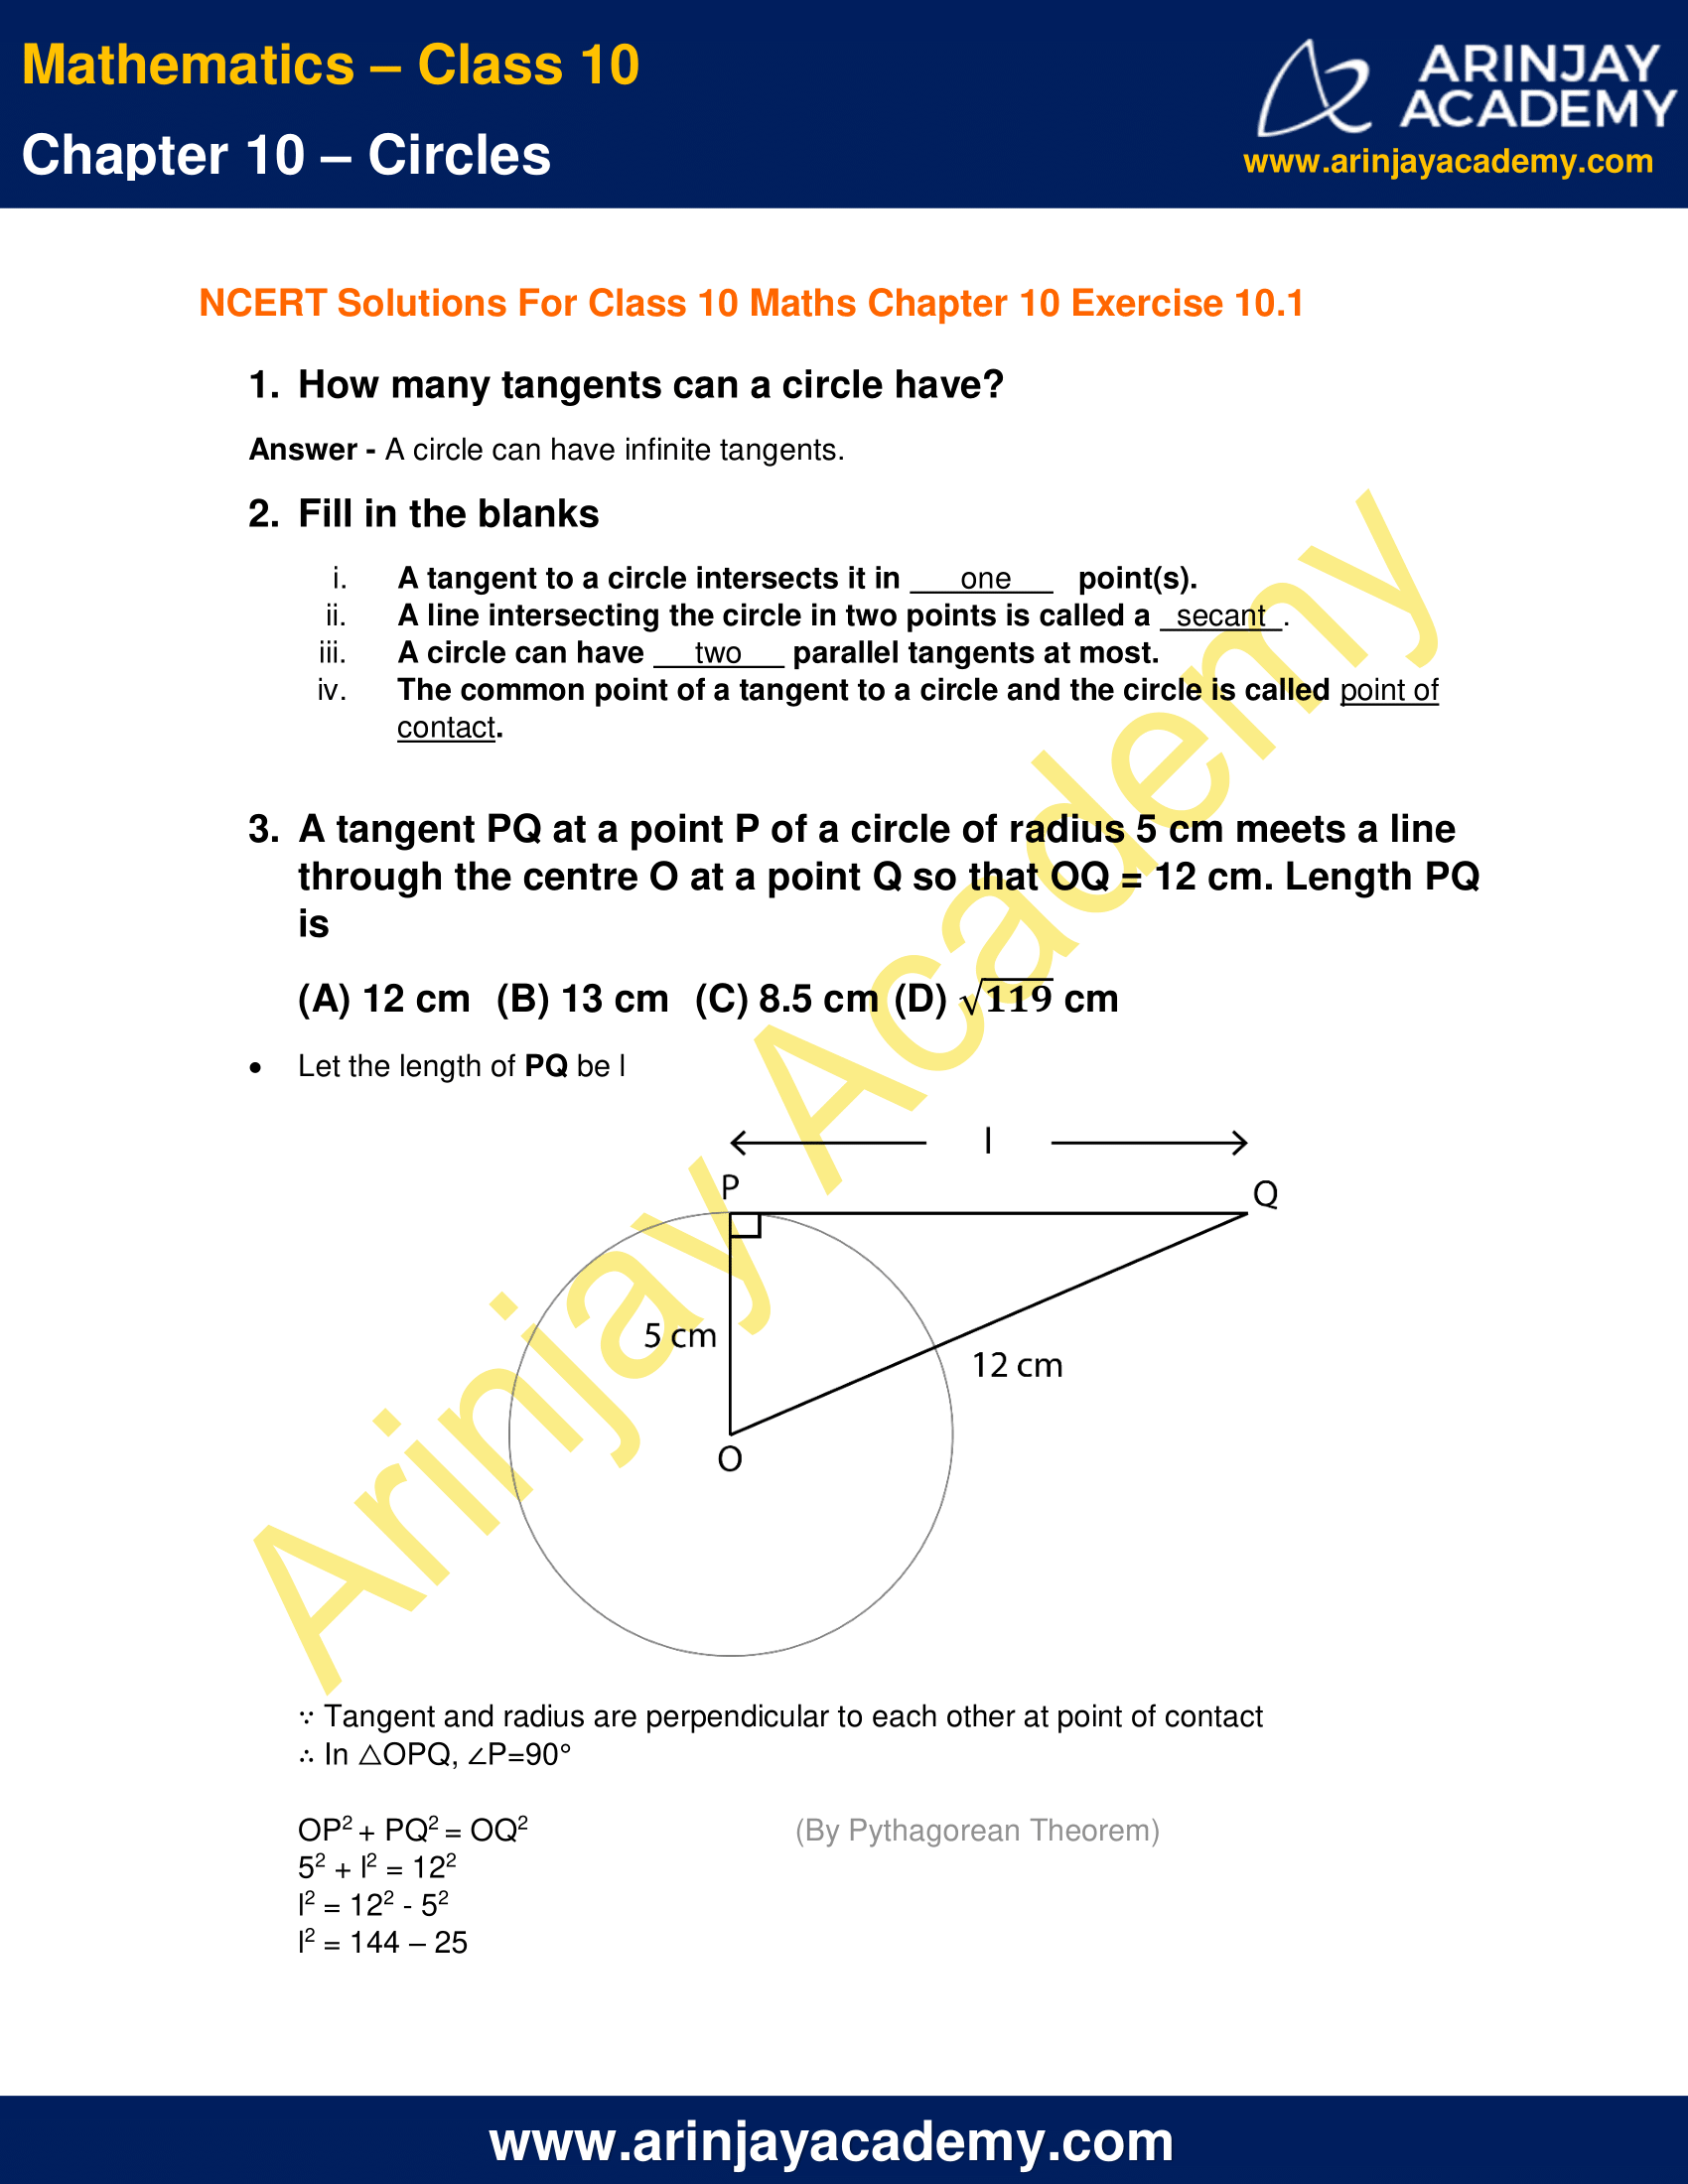 NCERT Solutions For Class 10 Maths Chapter 10 Exercise 10.1 image 1